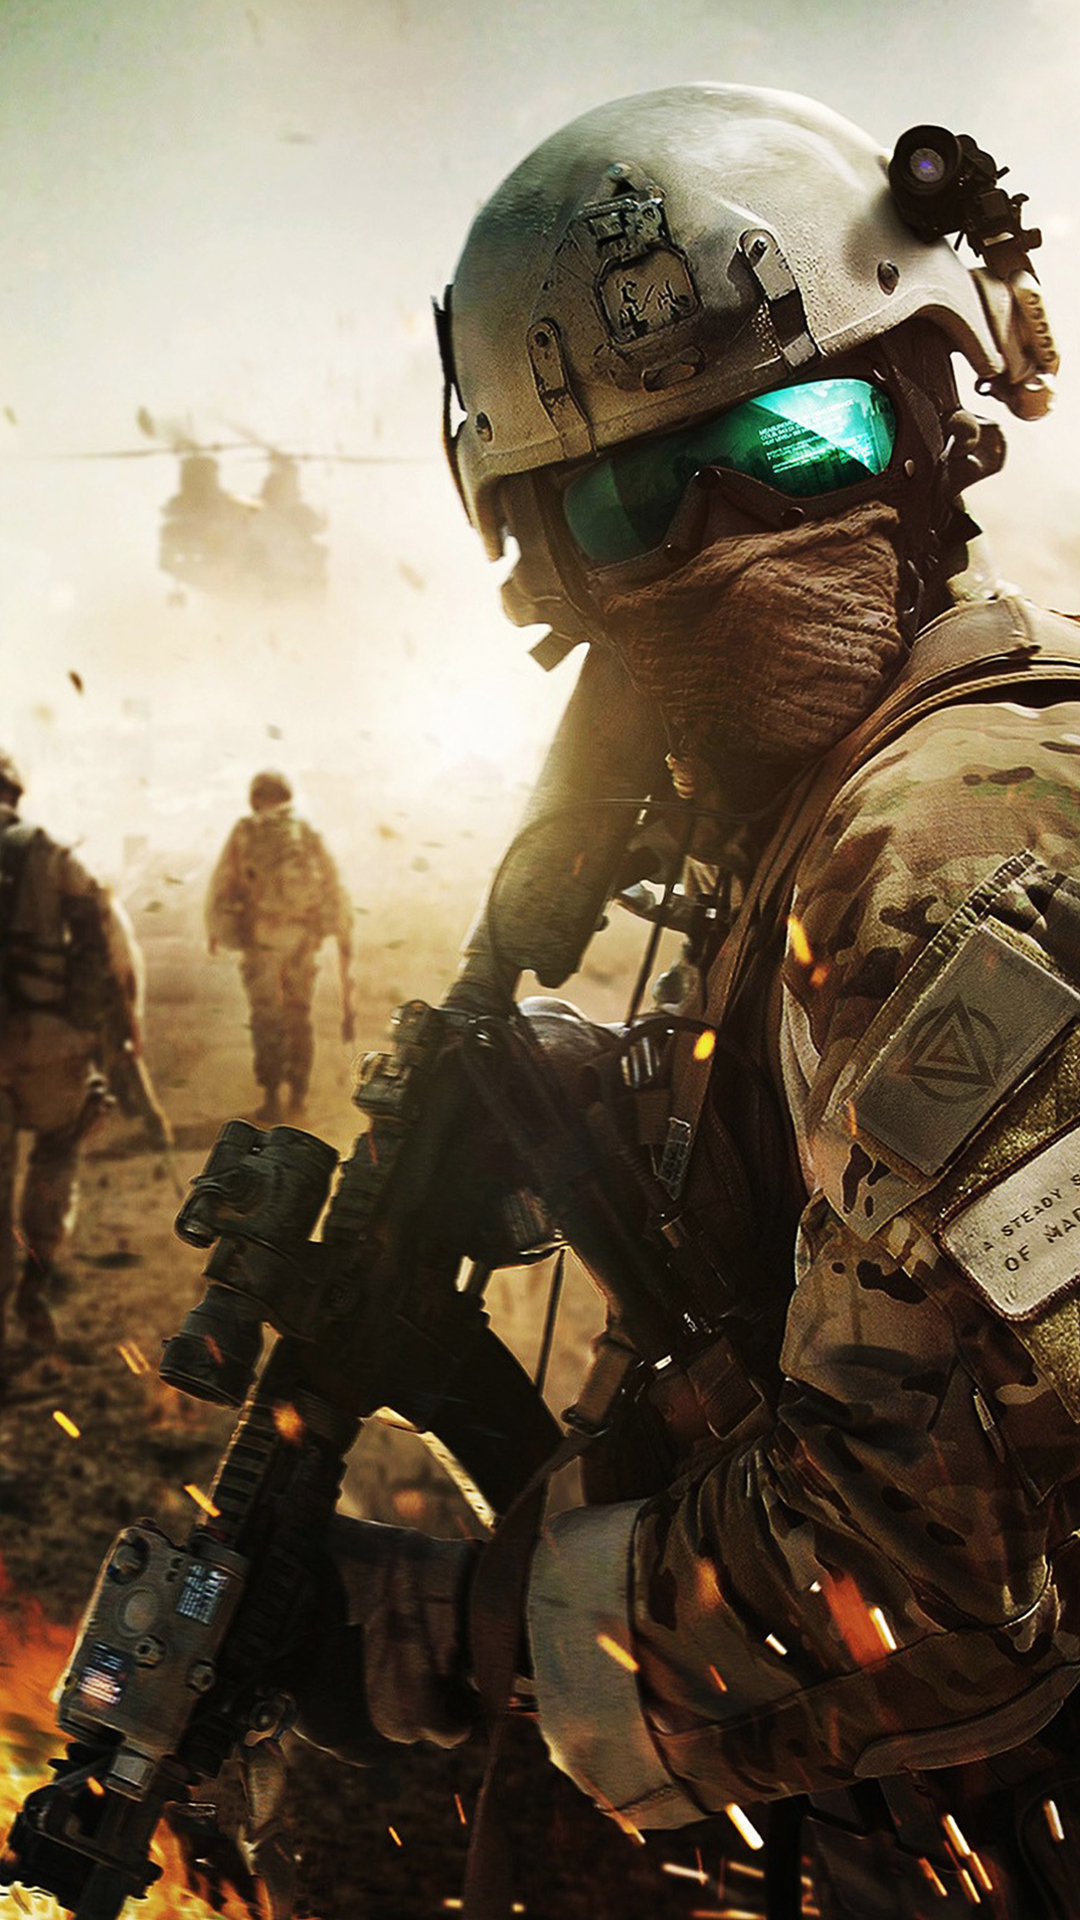 battlefield 5 hd wallpaper for your mobile phone